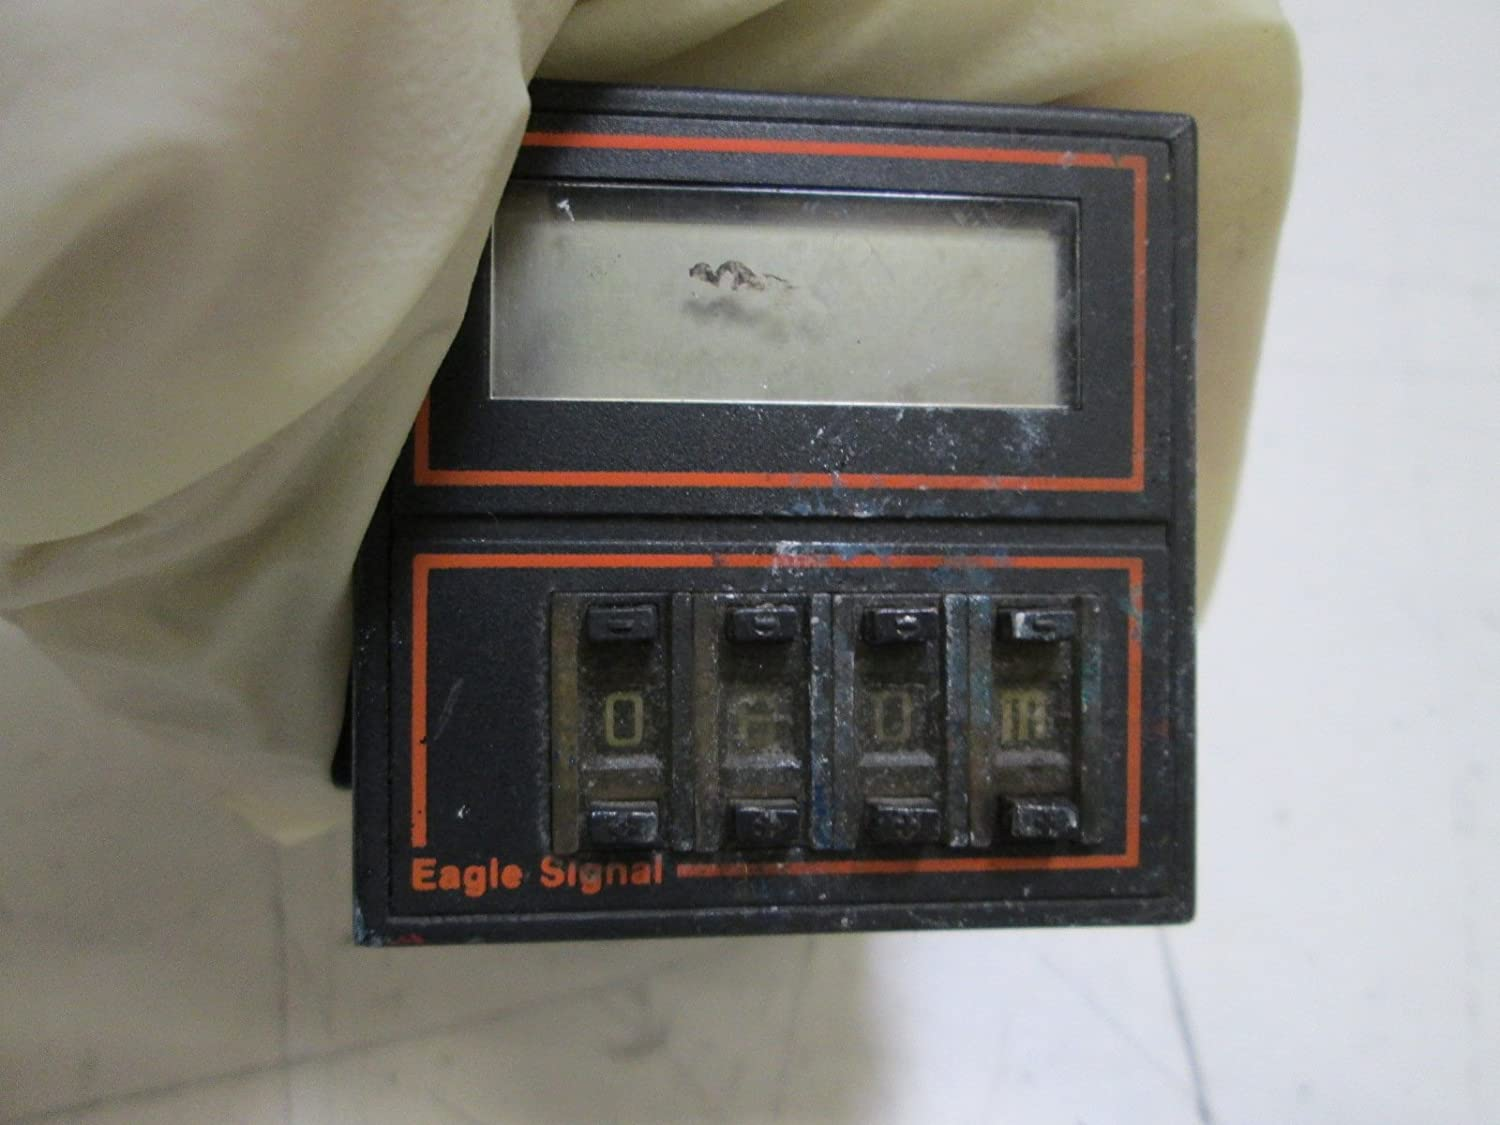 EAGLE SIGNAL TIMING RELAY LXPUSED Amazoncom Industrial - Spdt relay eagle